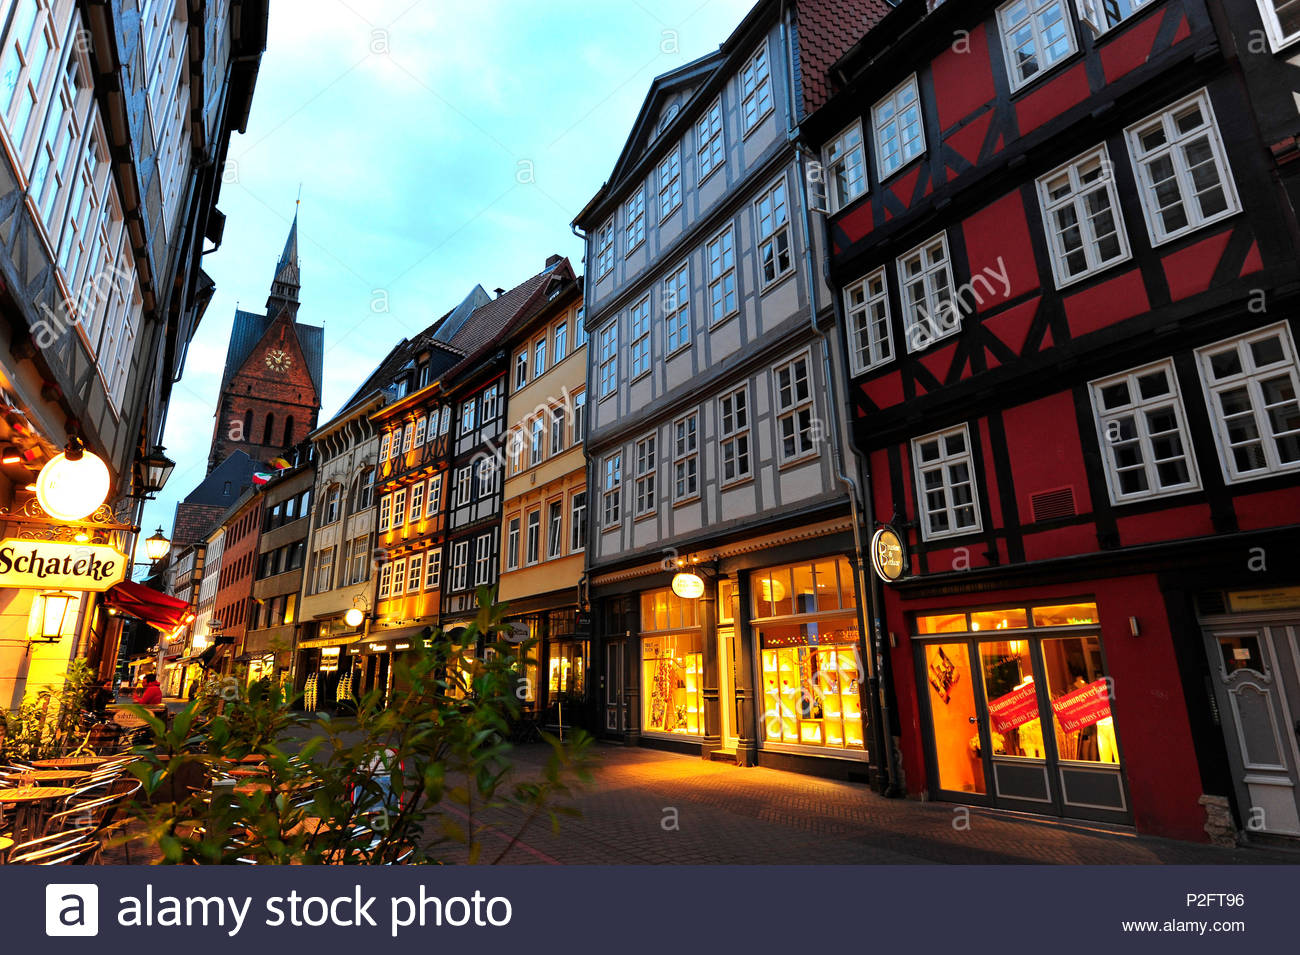 Kramerstrasse in the evening, market church in the background, historic city centre, Hanover, Hannover, Lower Saxony, Germany - Stock Image